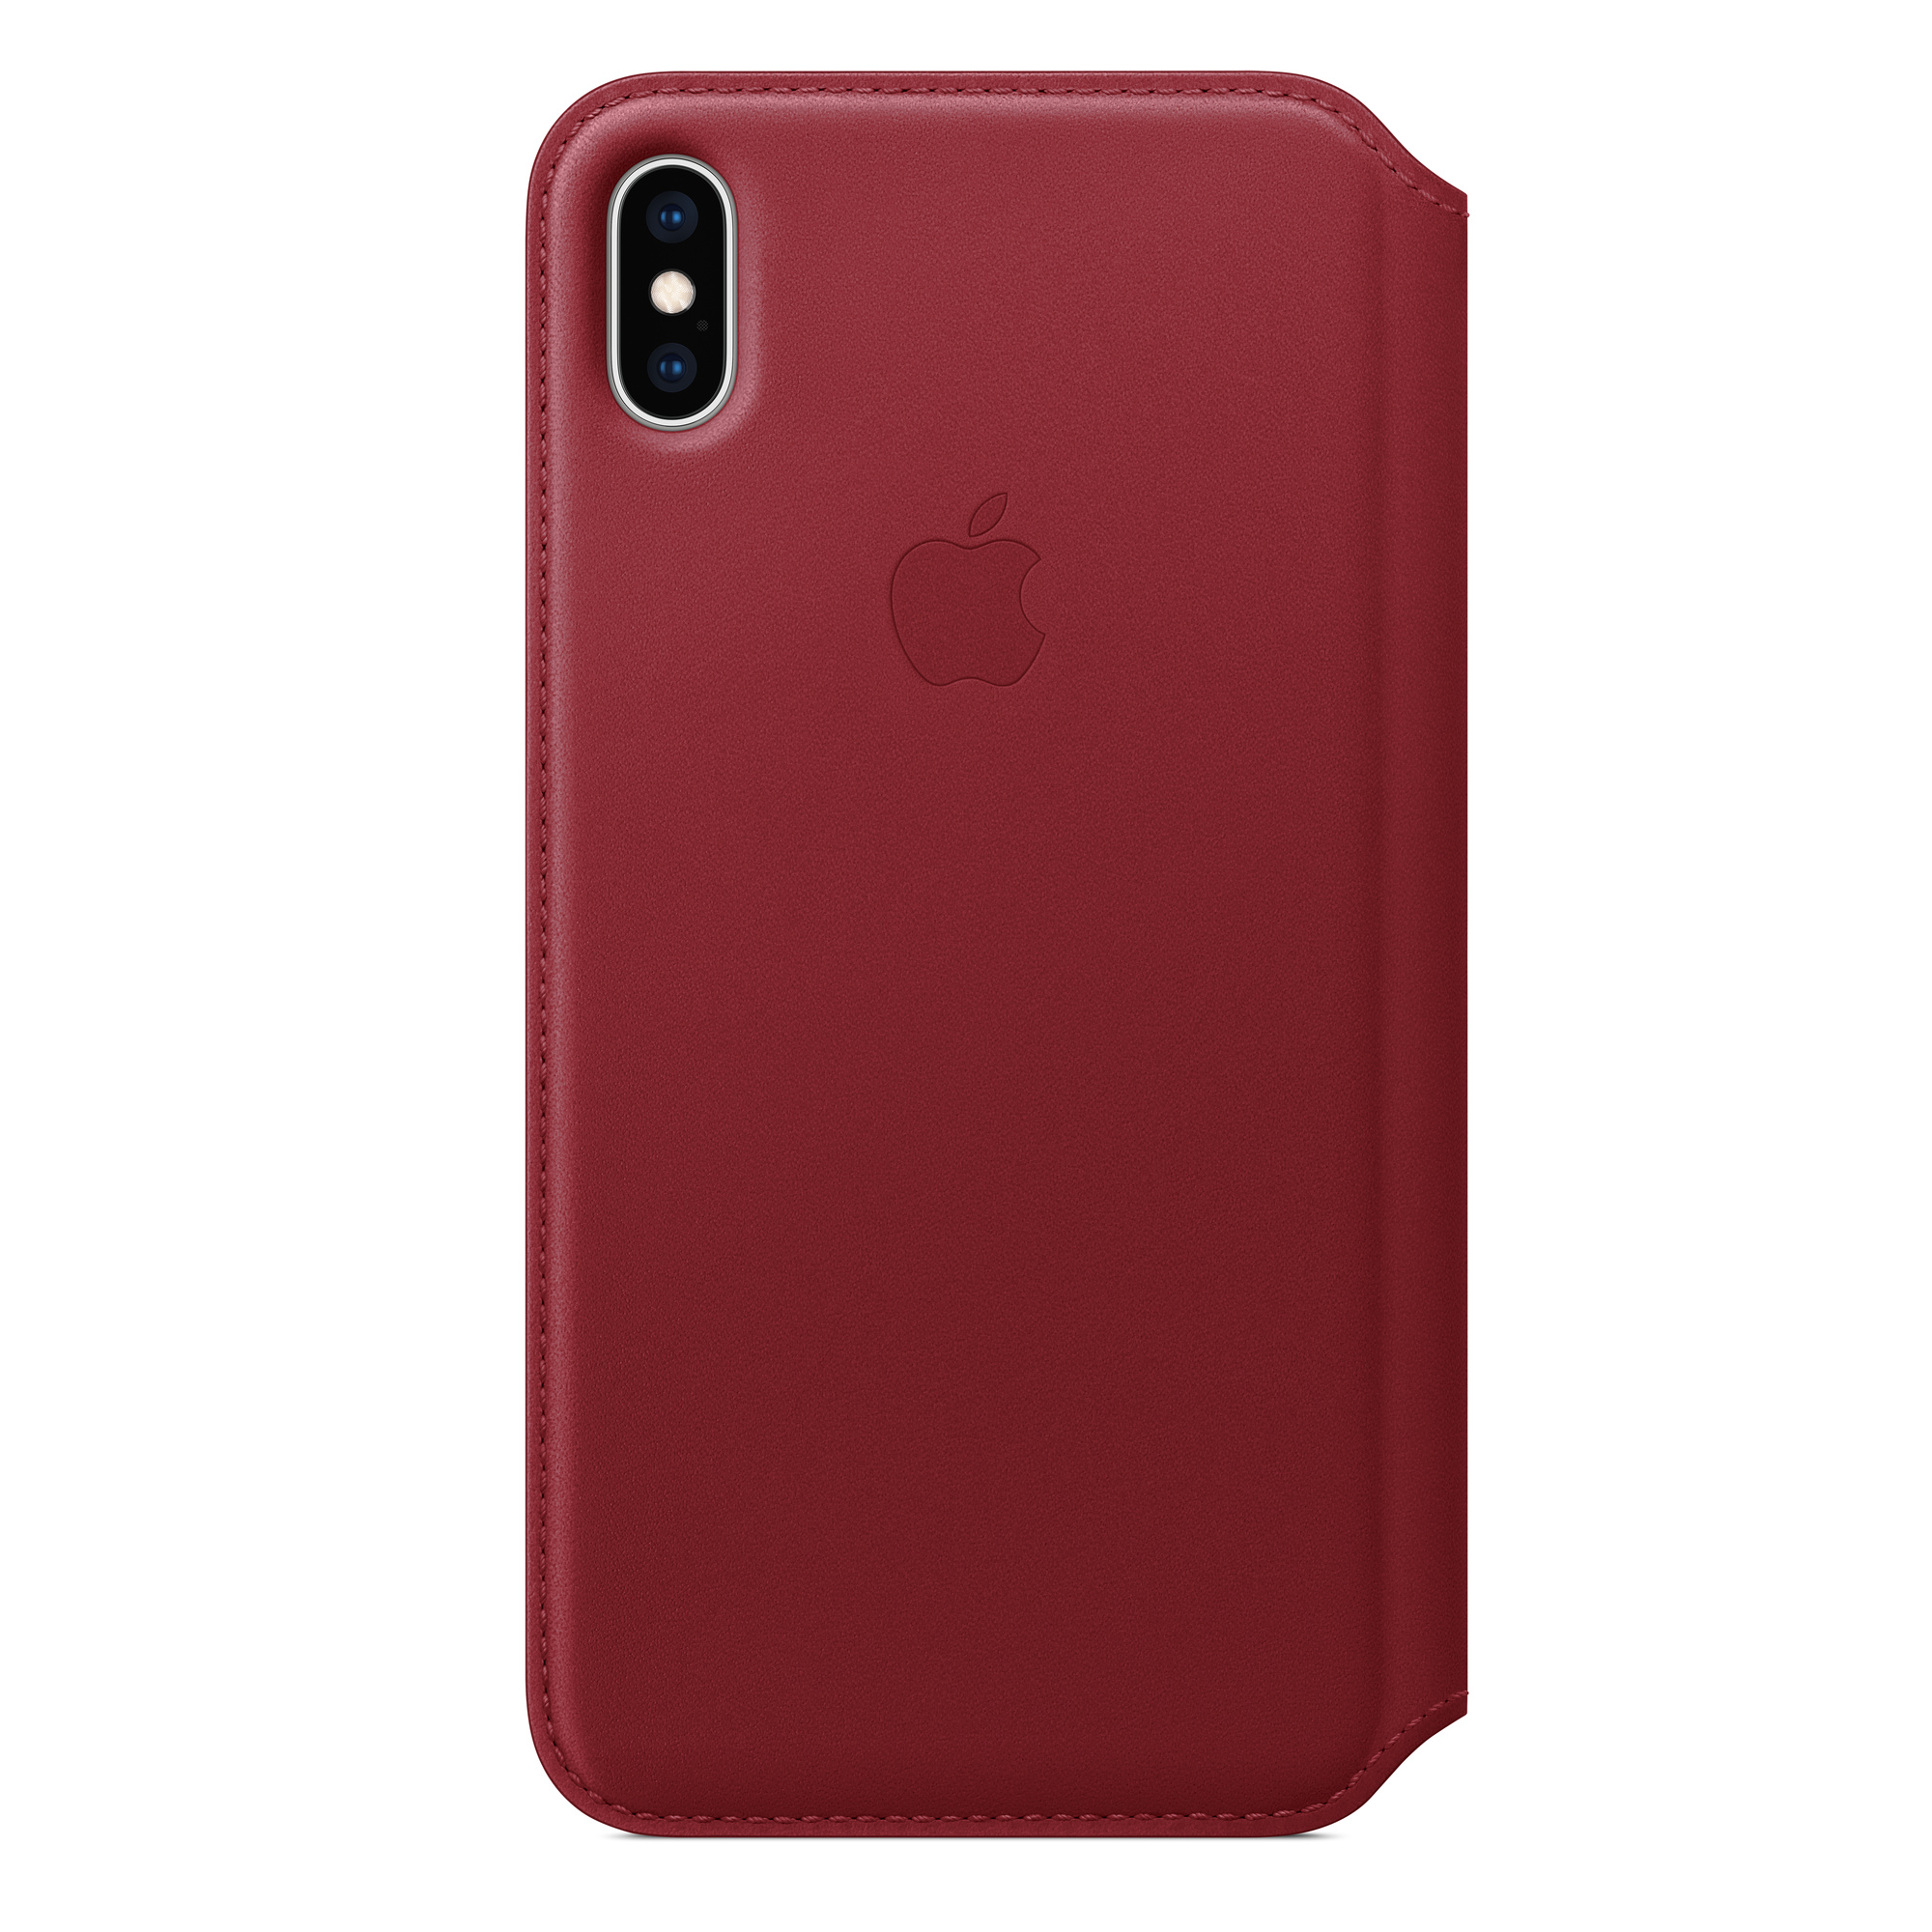 brand new a4bec 34741 iPhone XS Max Leather Folio - (PRODUCT)RED